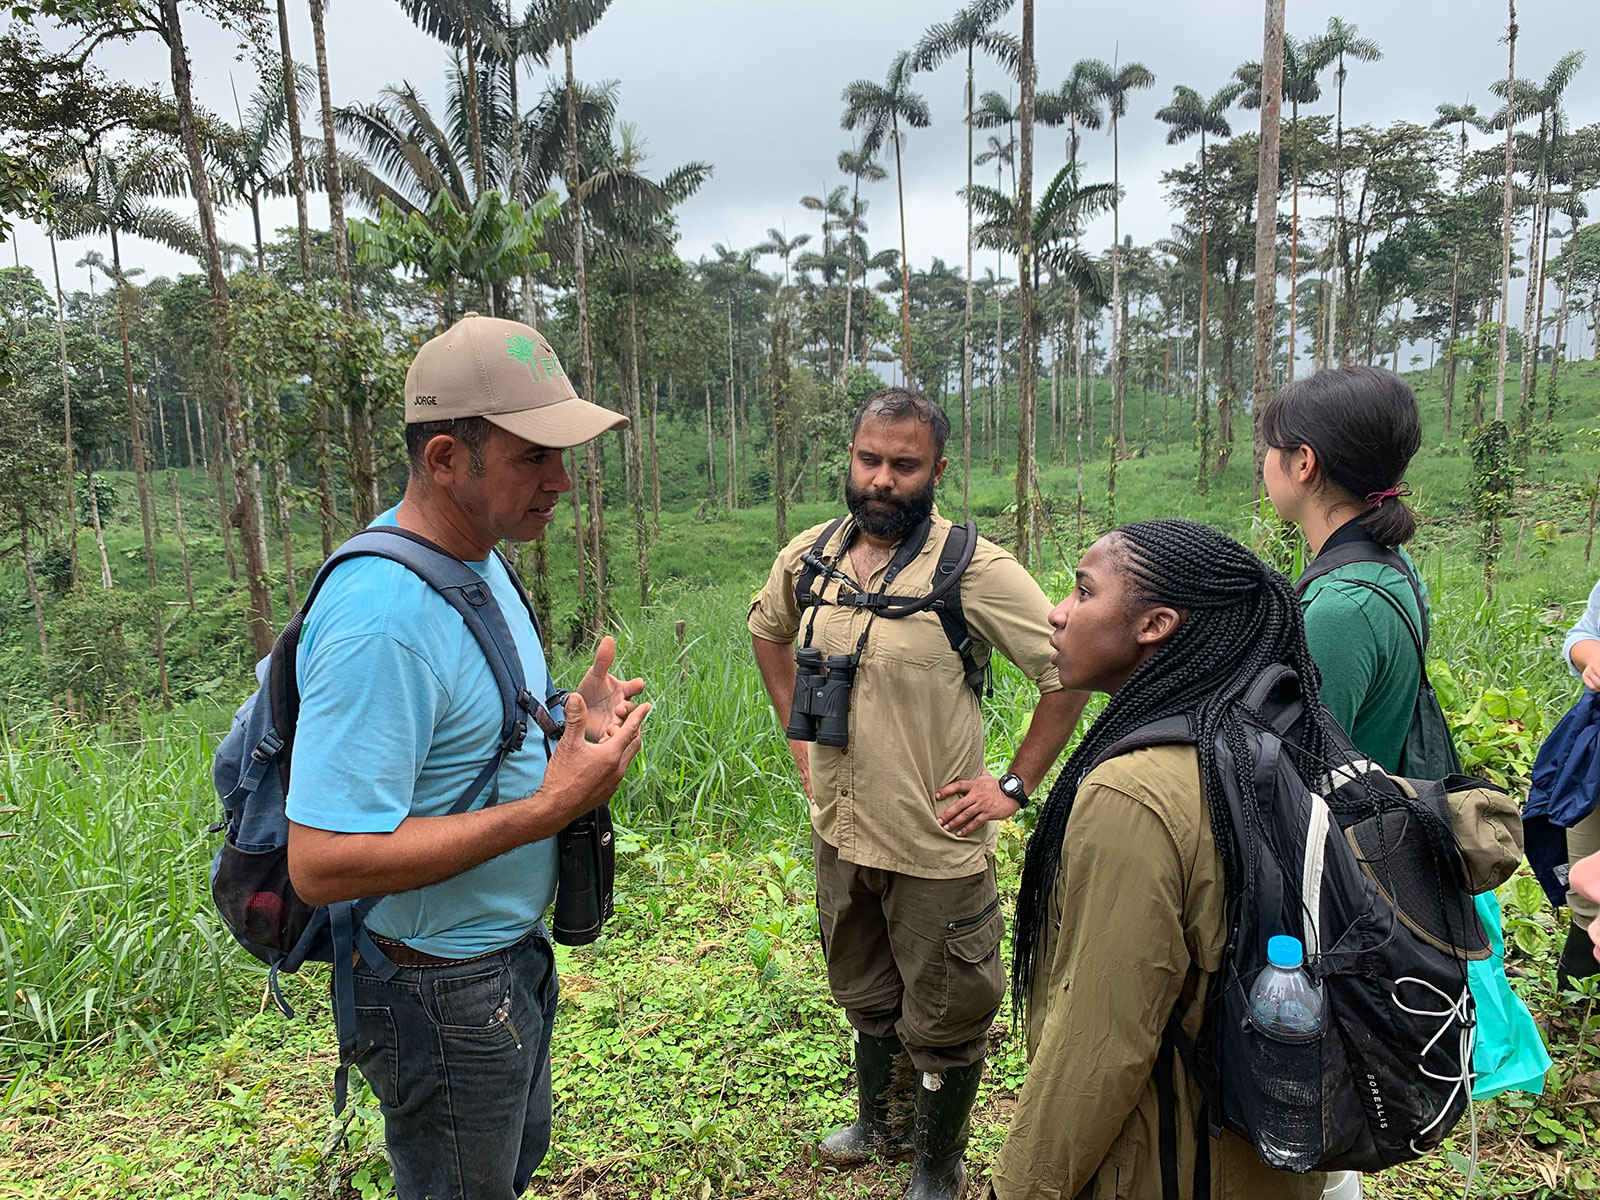 An instructor teaches a small group on a field course in the forest